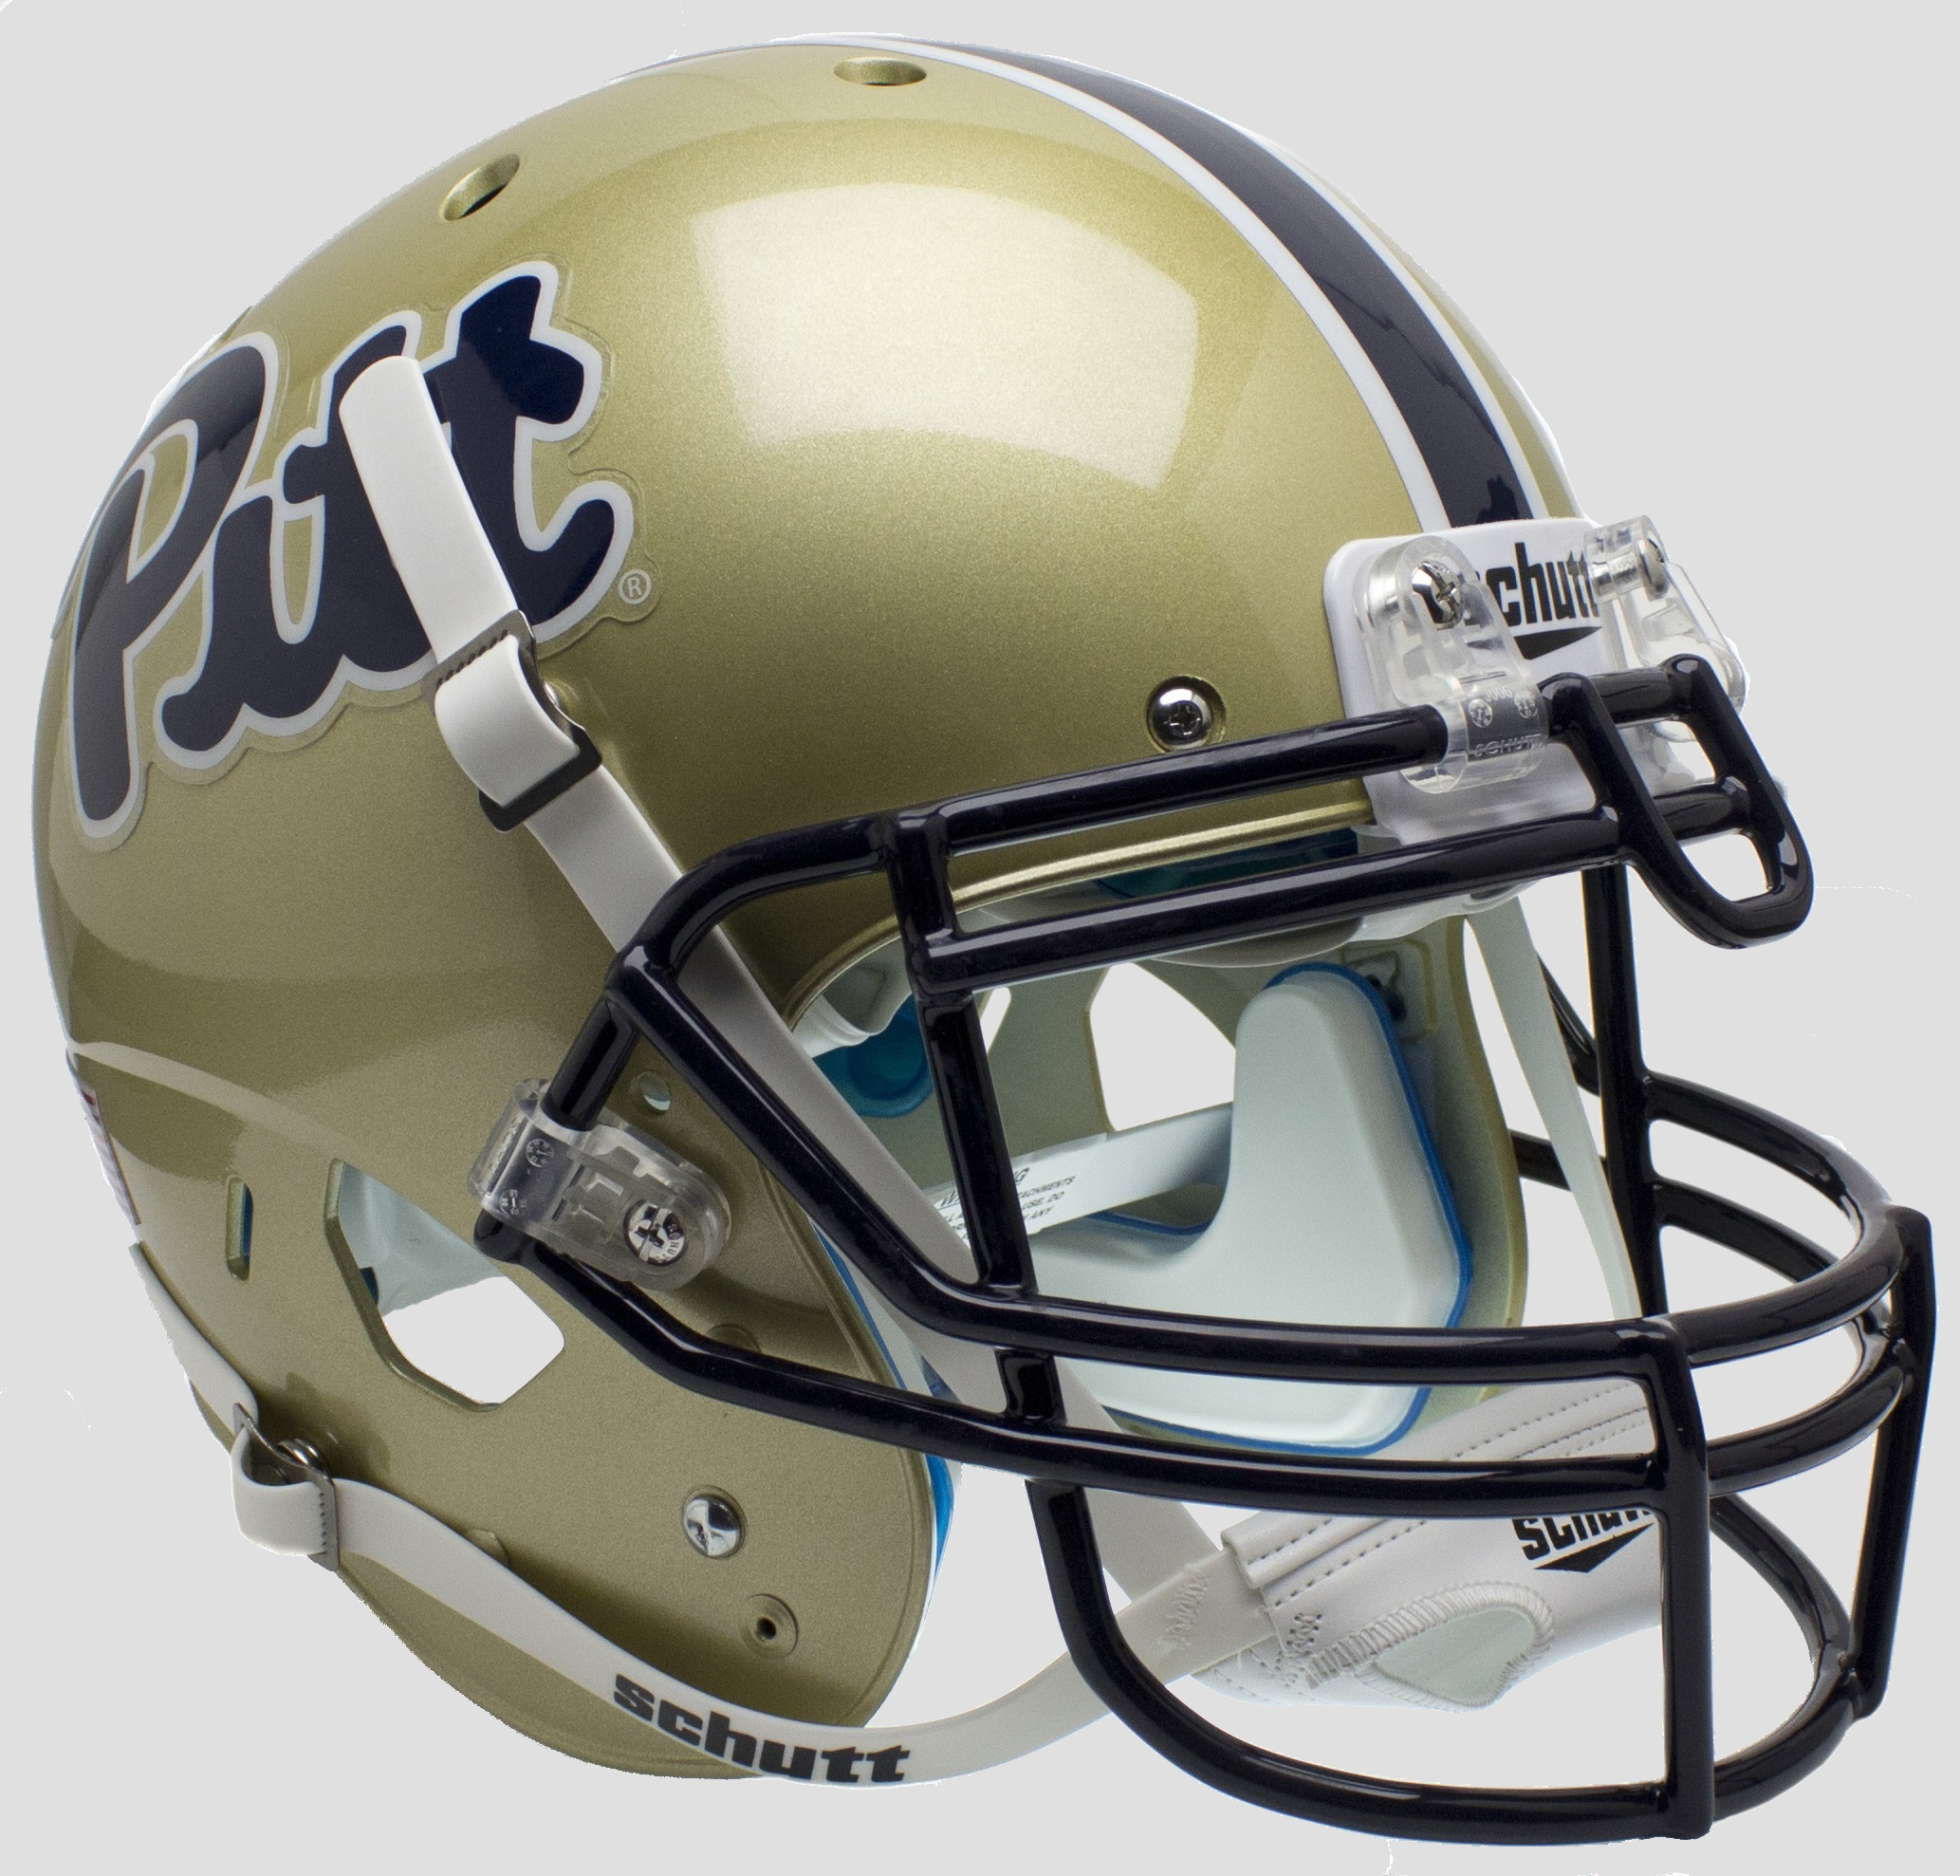 Pittsburgh Panthers Authentic College XP Football Helmet Schutt <B>Script</B>